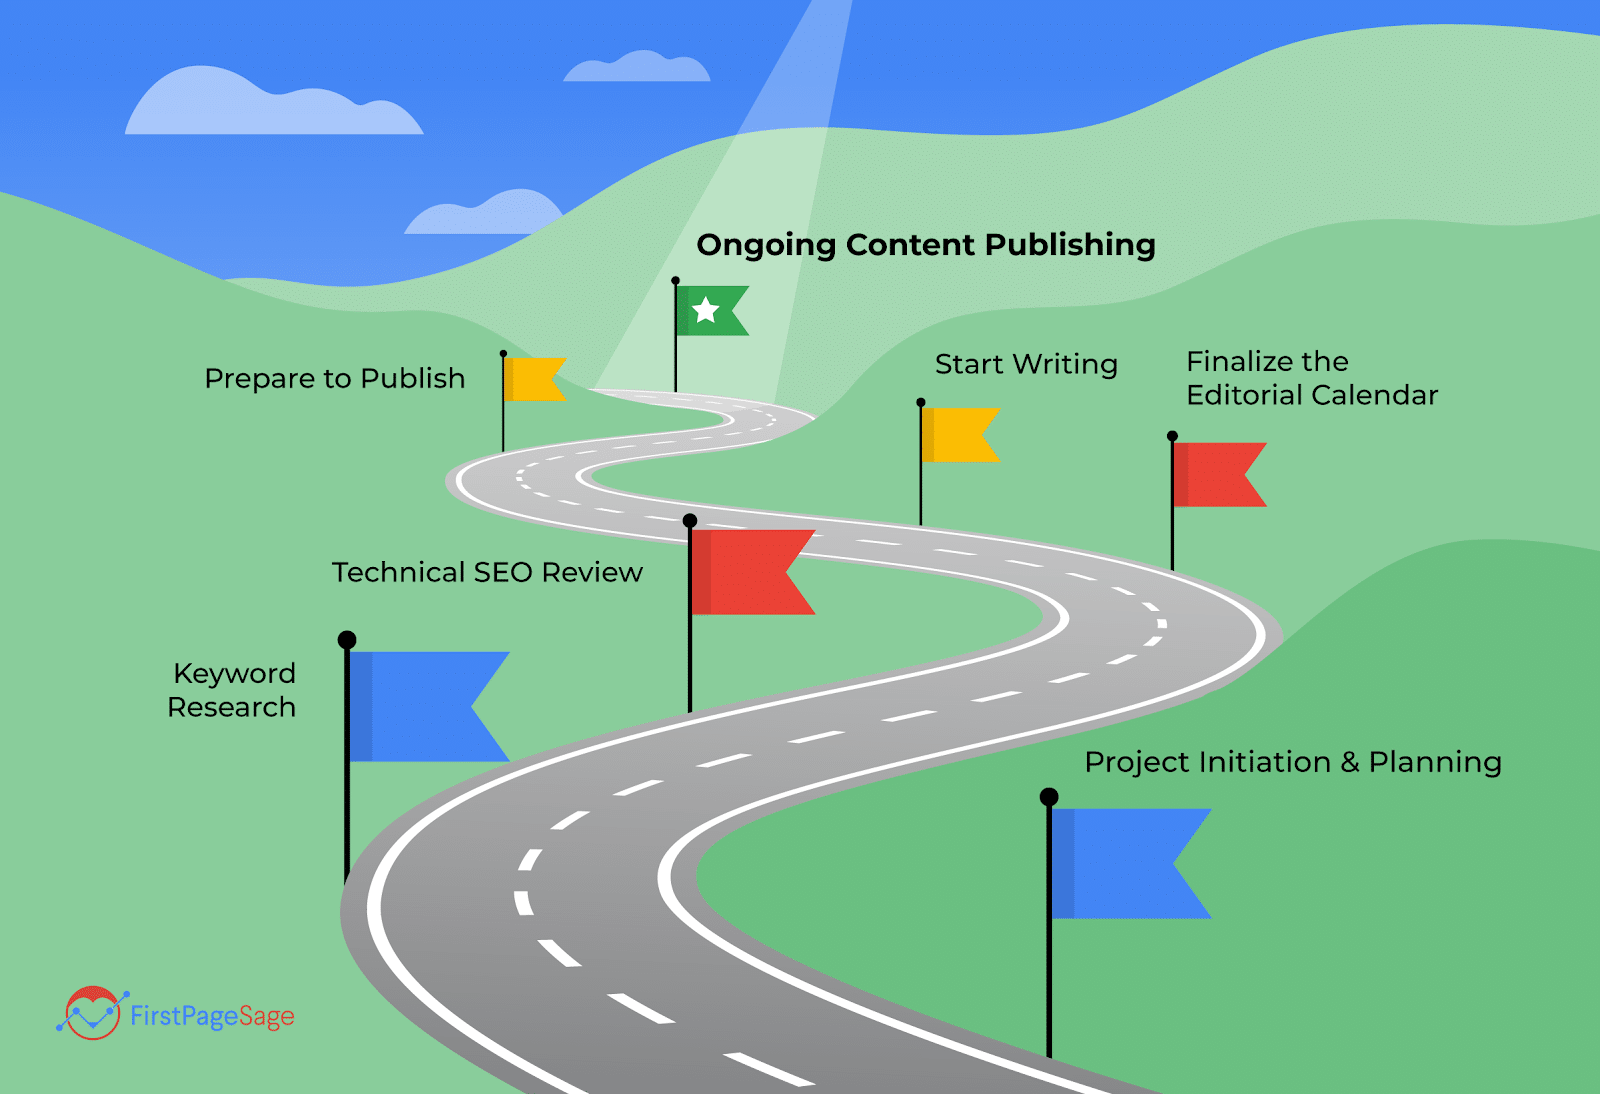 A road winding through the 7 steps of the First Page Sage content marketing strategy.